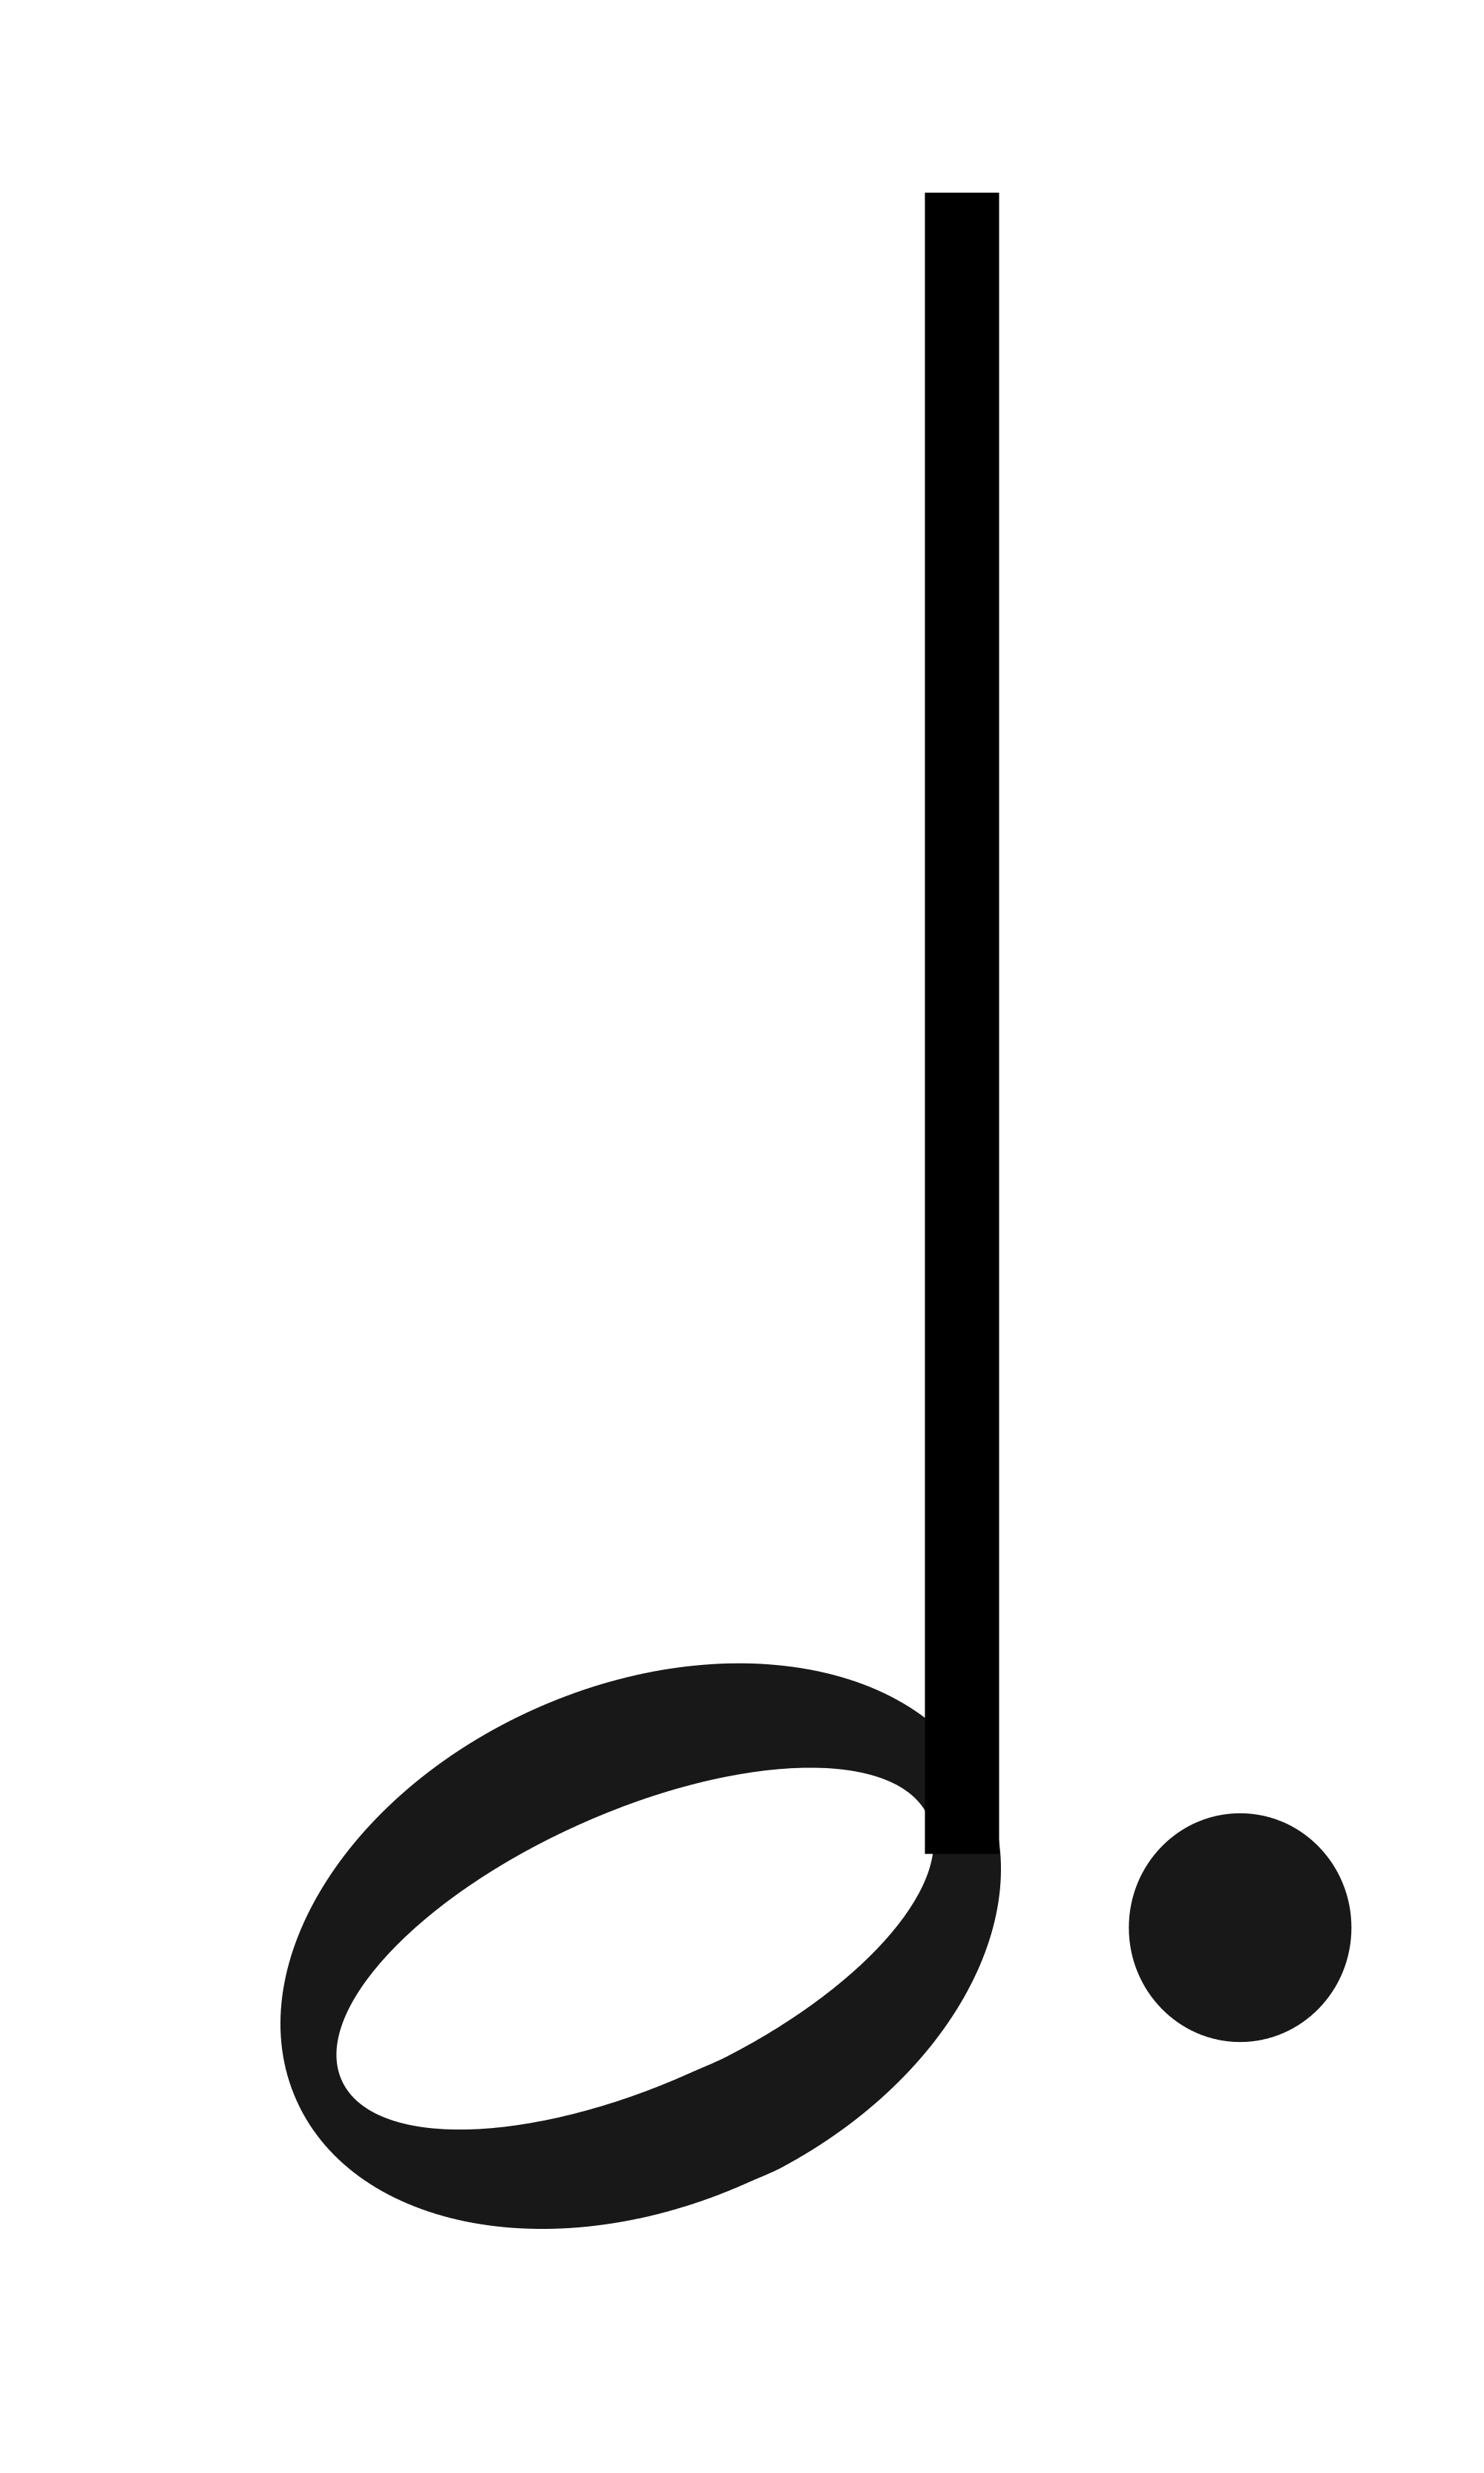 Clipart music quarter note. How dotted notes work